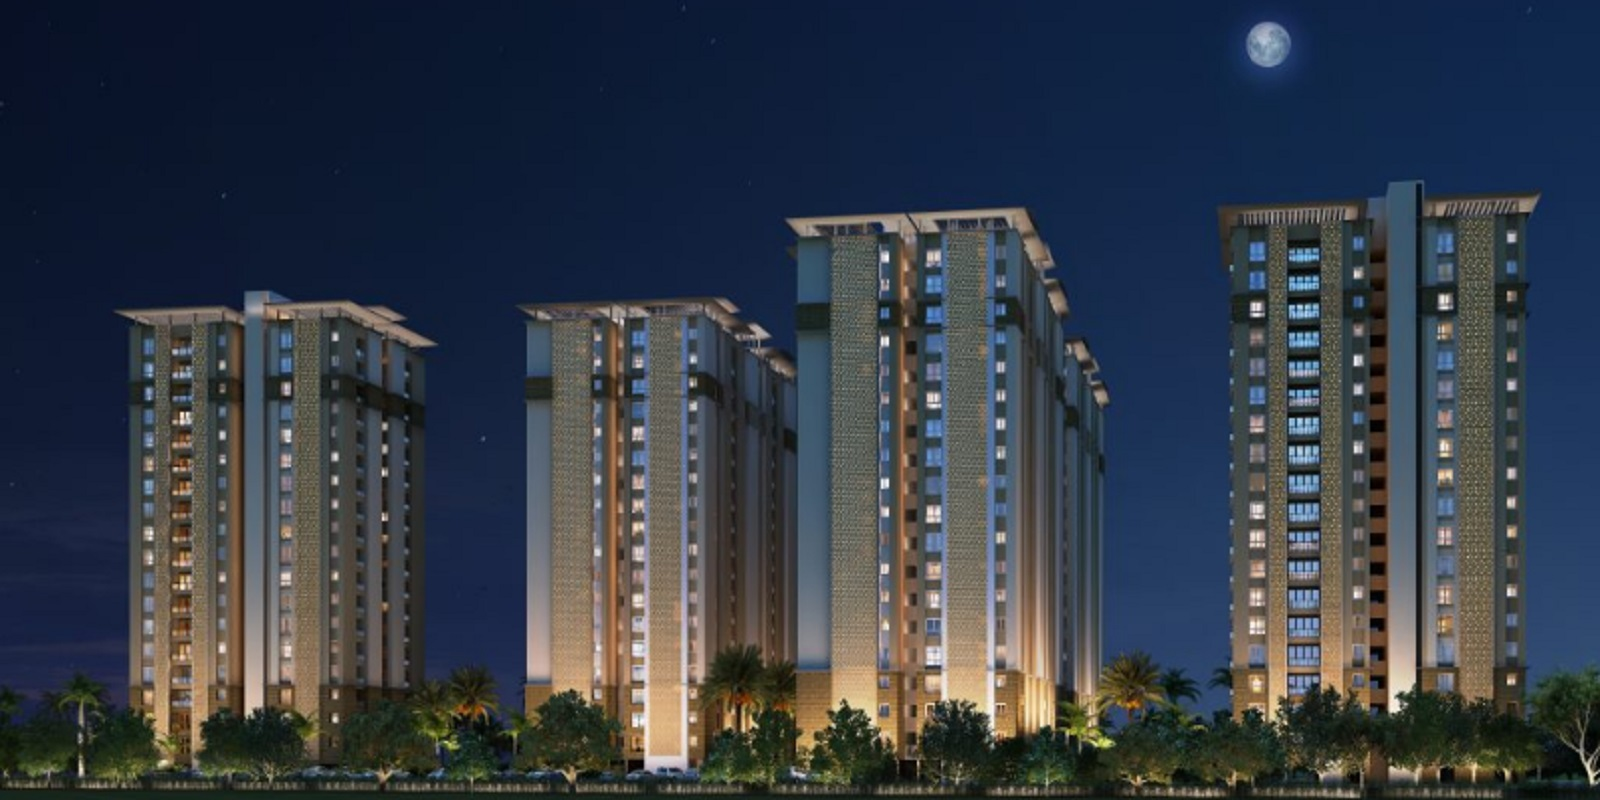 pacifica hillcrest phase 2 project large image2